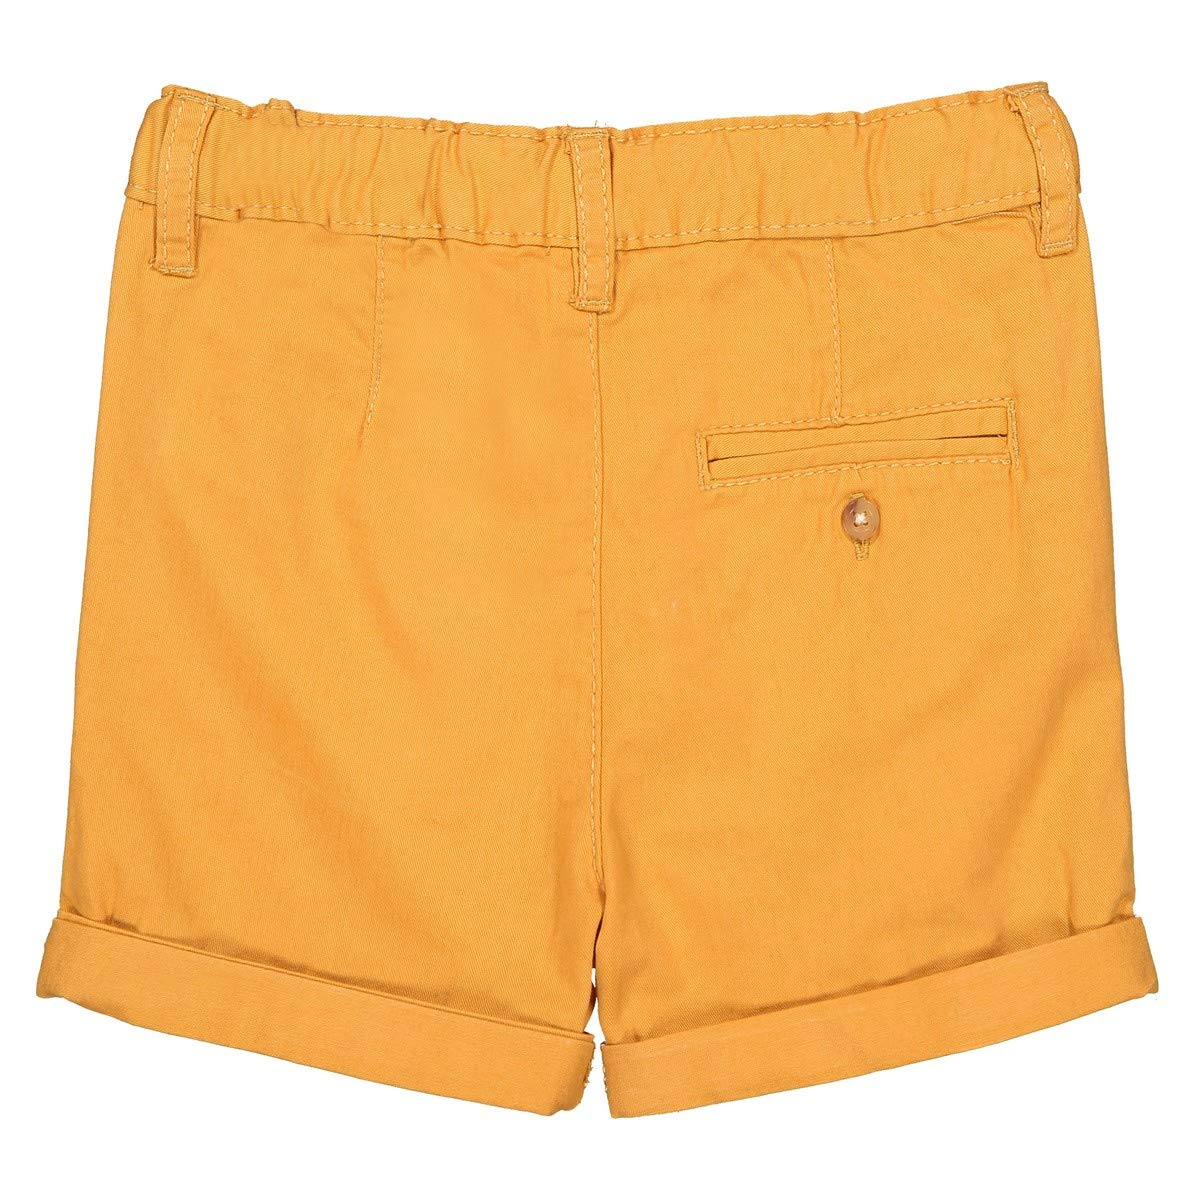 La Redoute Collections Big Boys Pure Cotton Bermuda Shorts 3 Months-3 Years